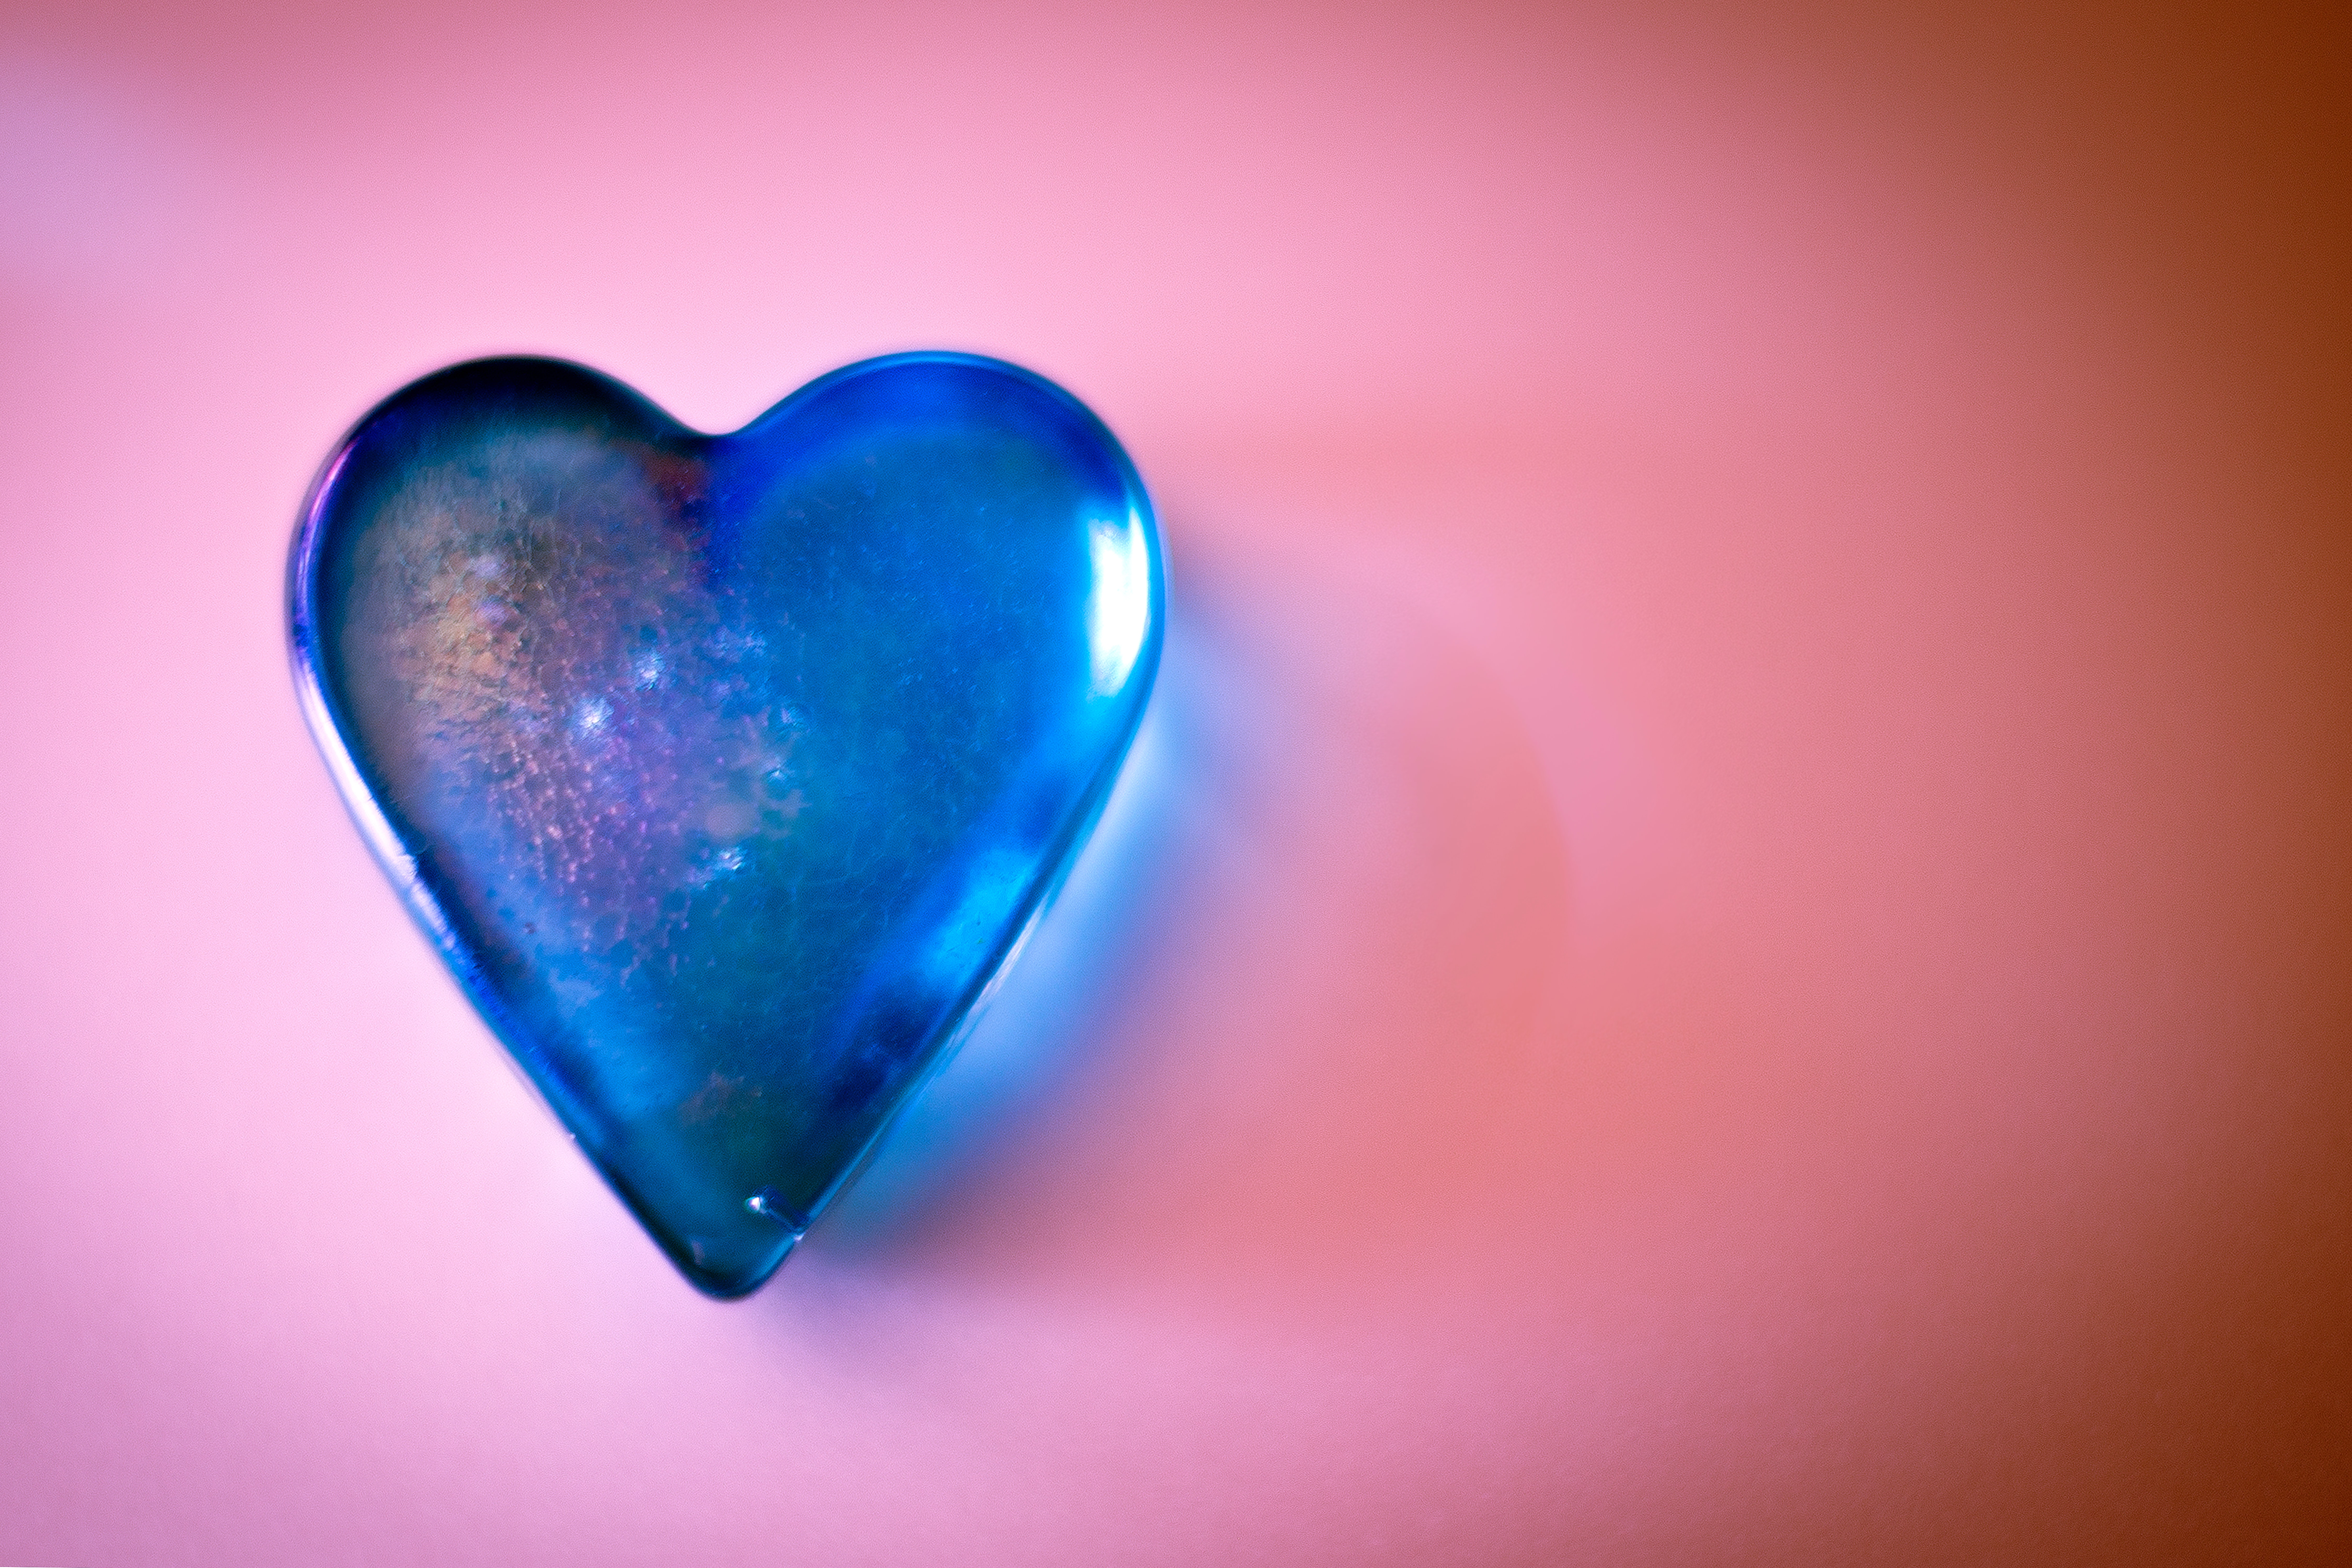 Love is the answer – what was the question?